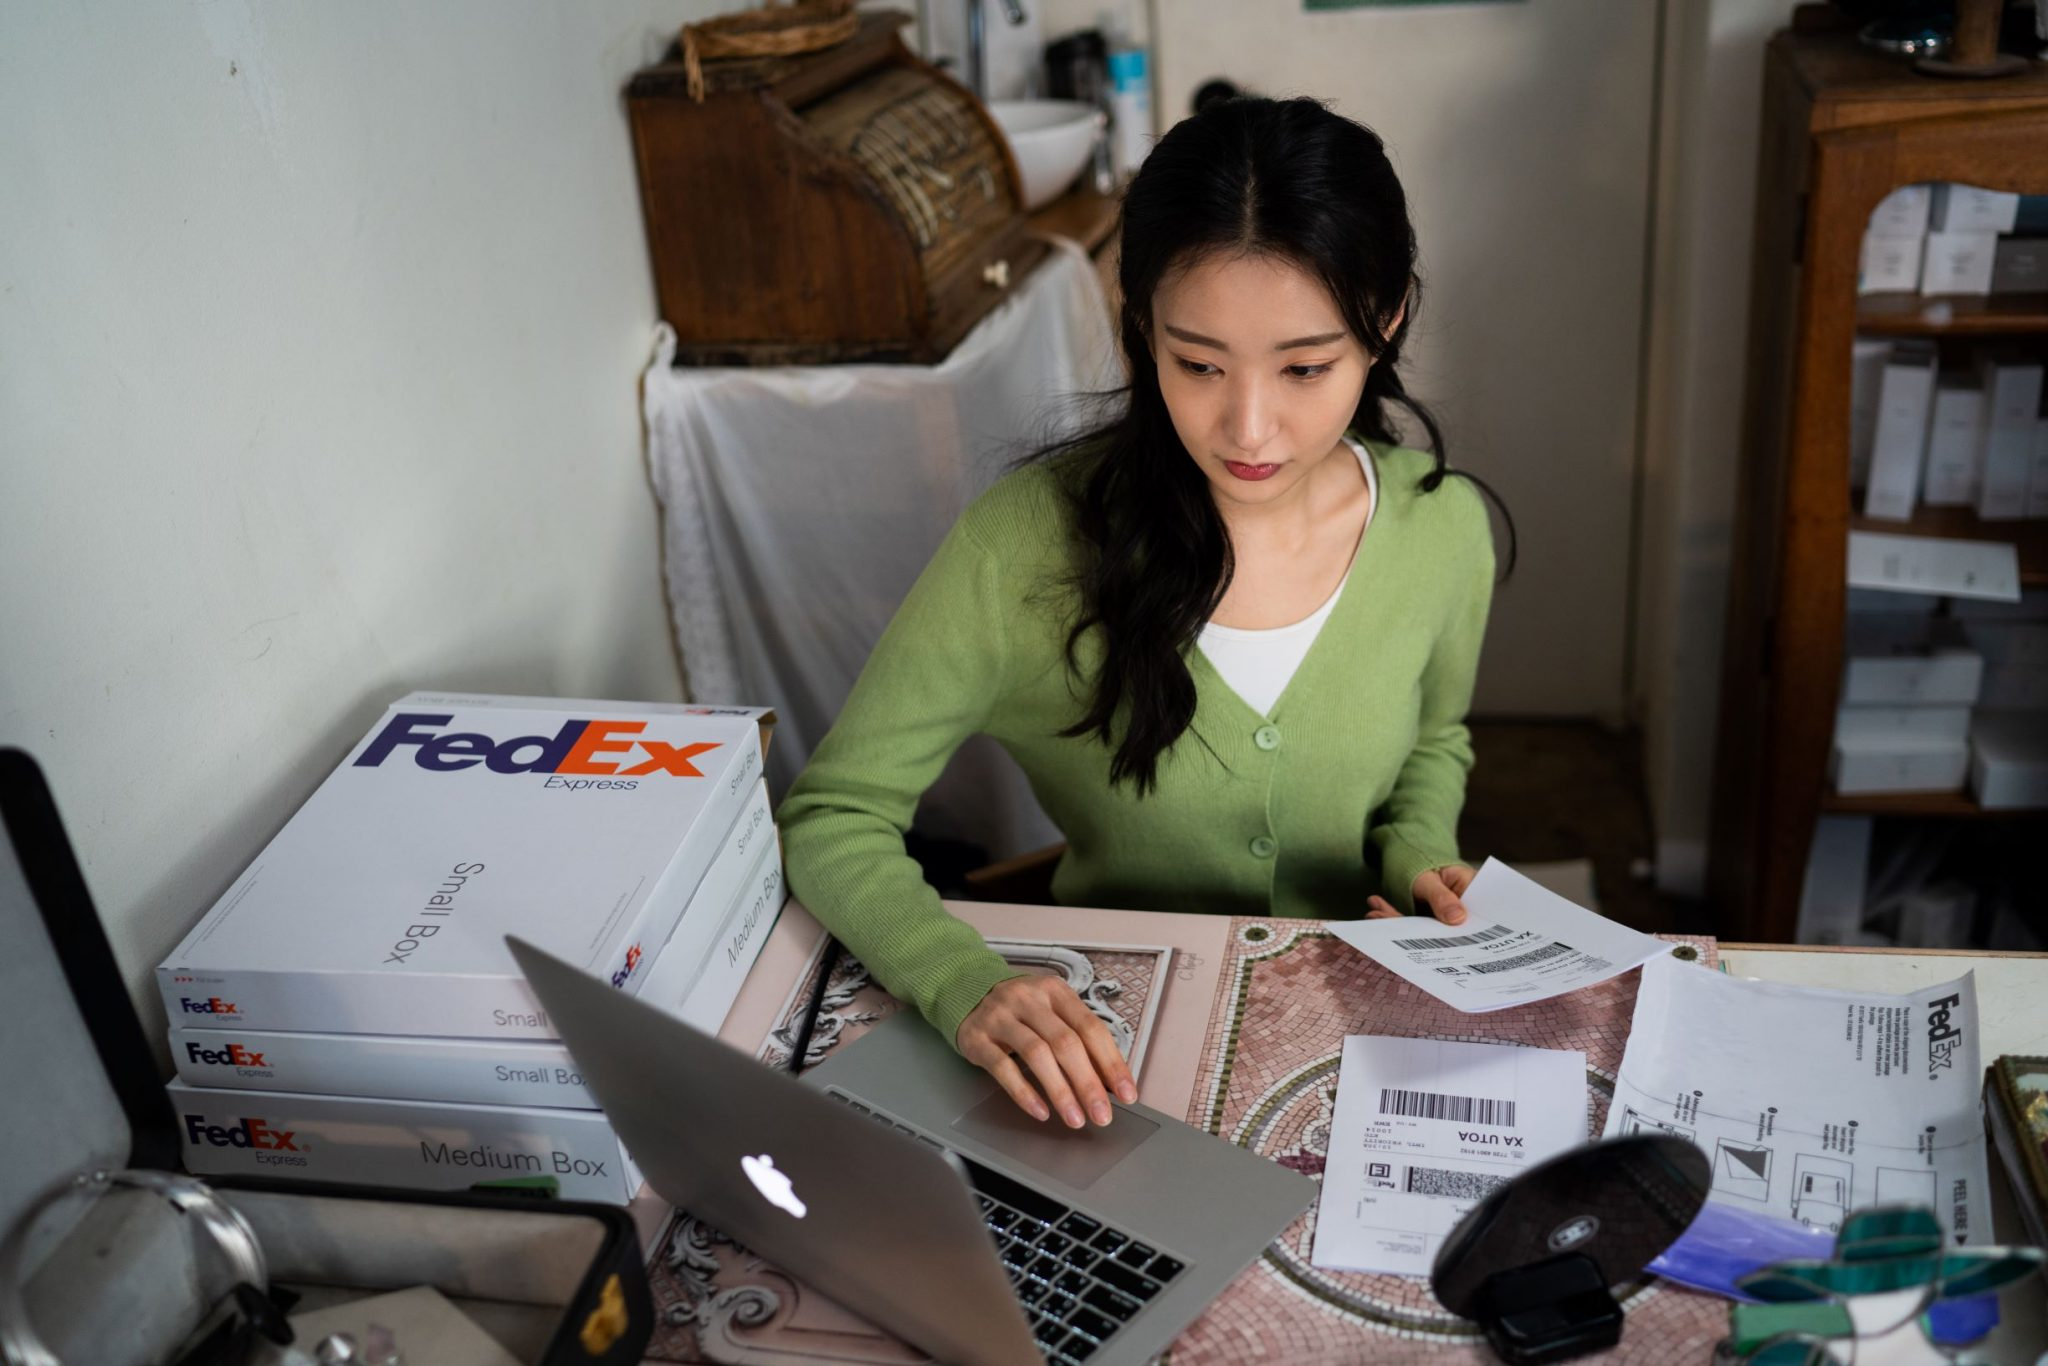 FedEx Express launches FICP